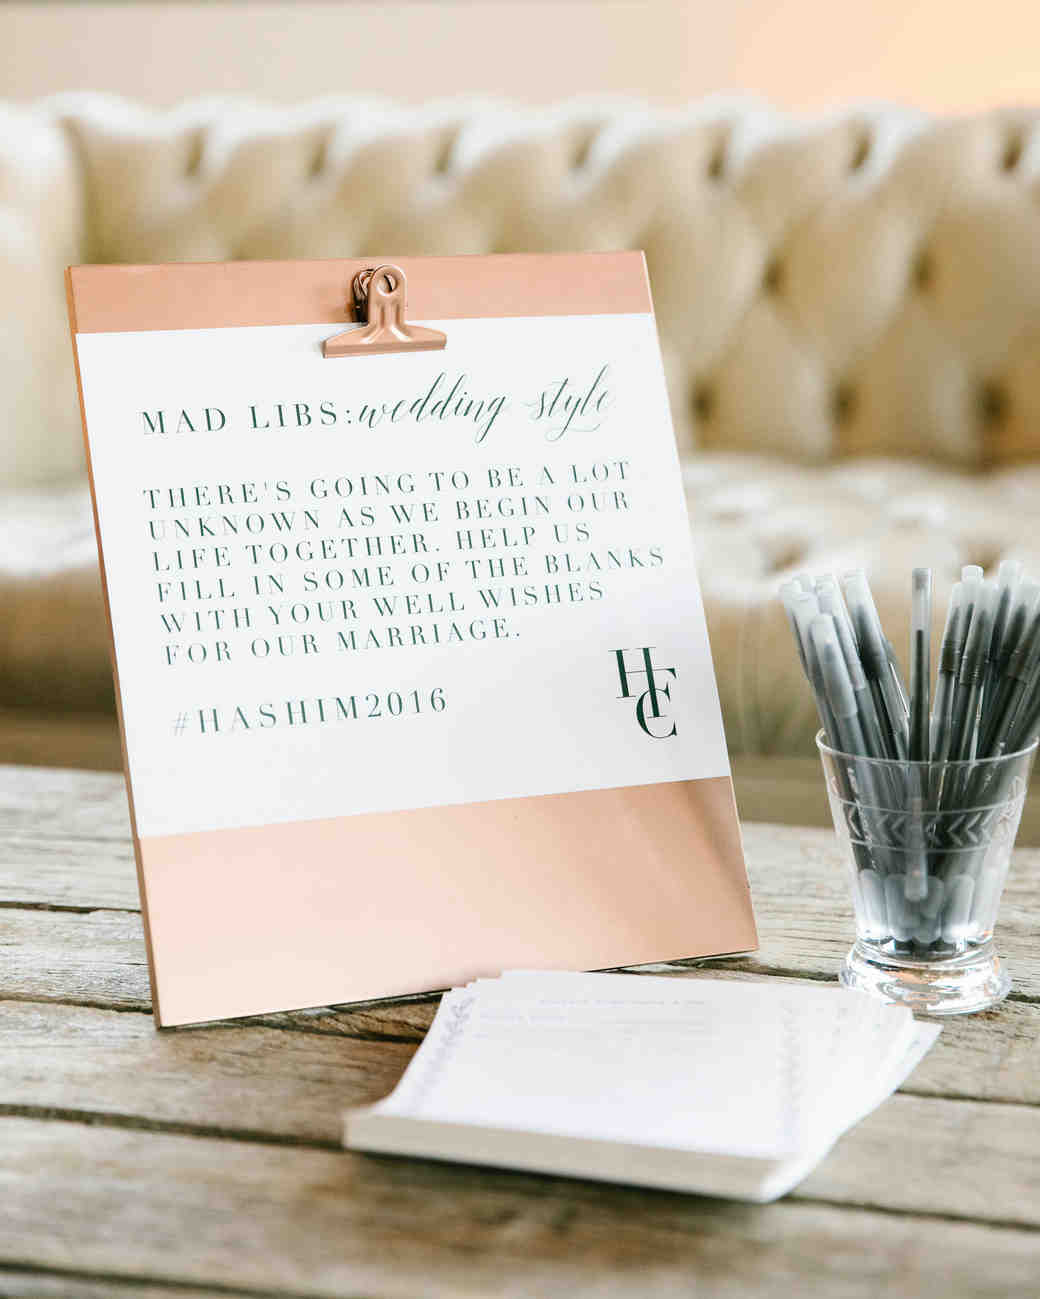 wedding mad libs advice cards clipboard pens